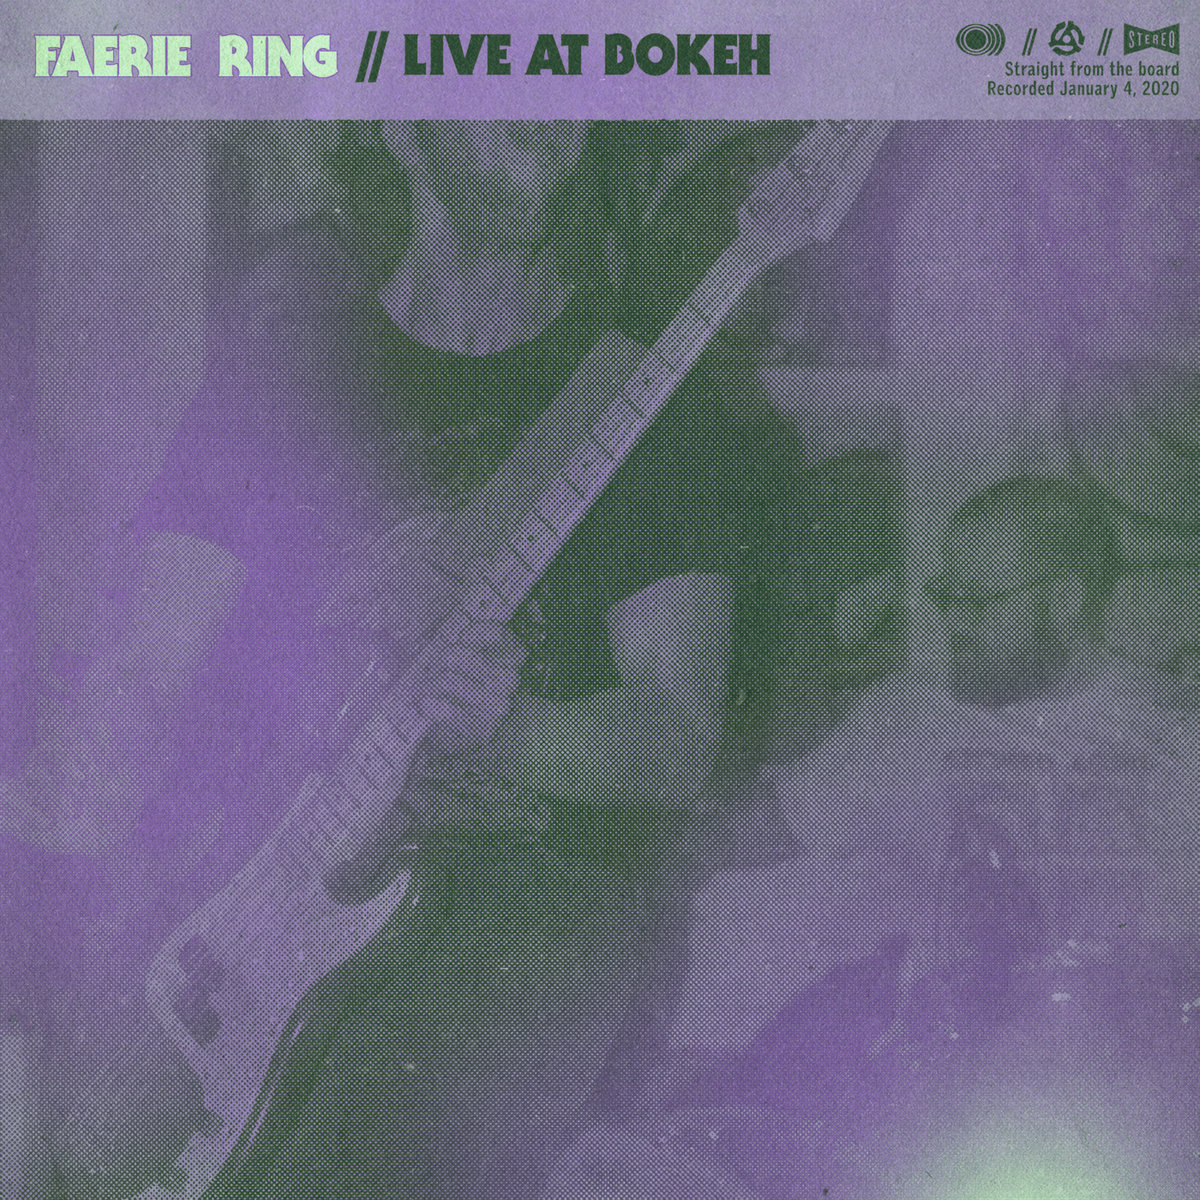 faerie ring live at bokeh